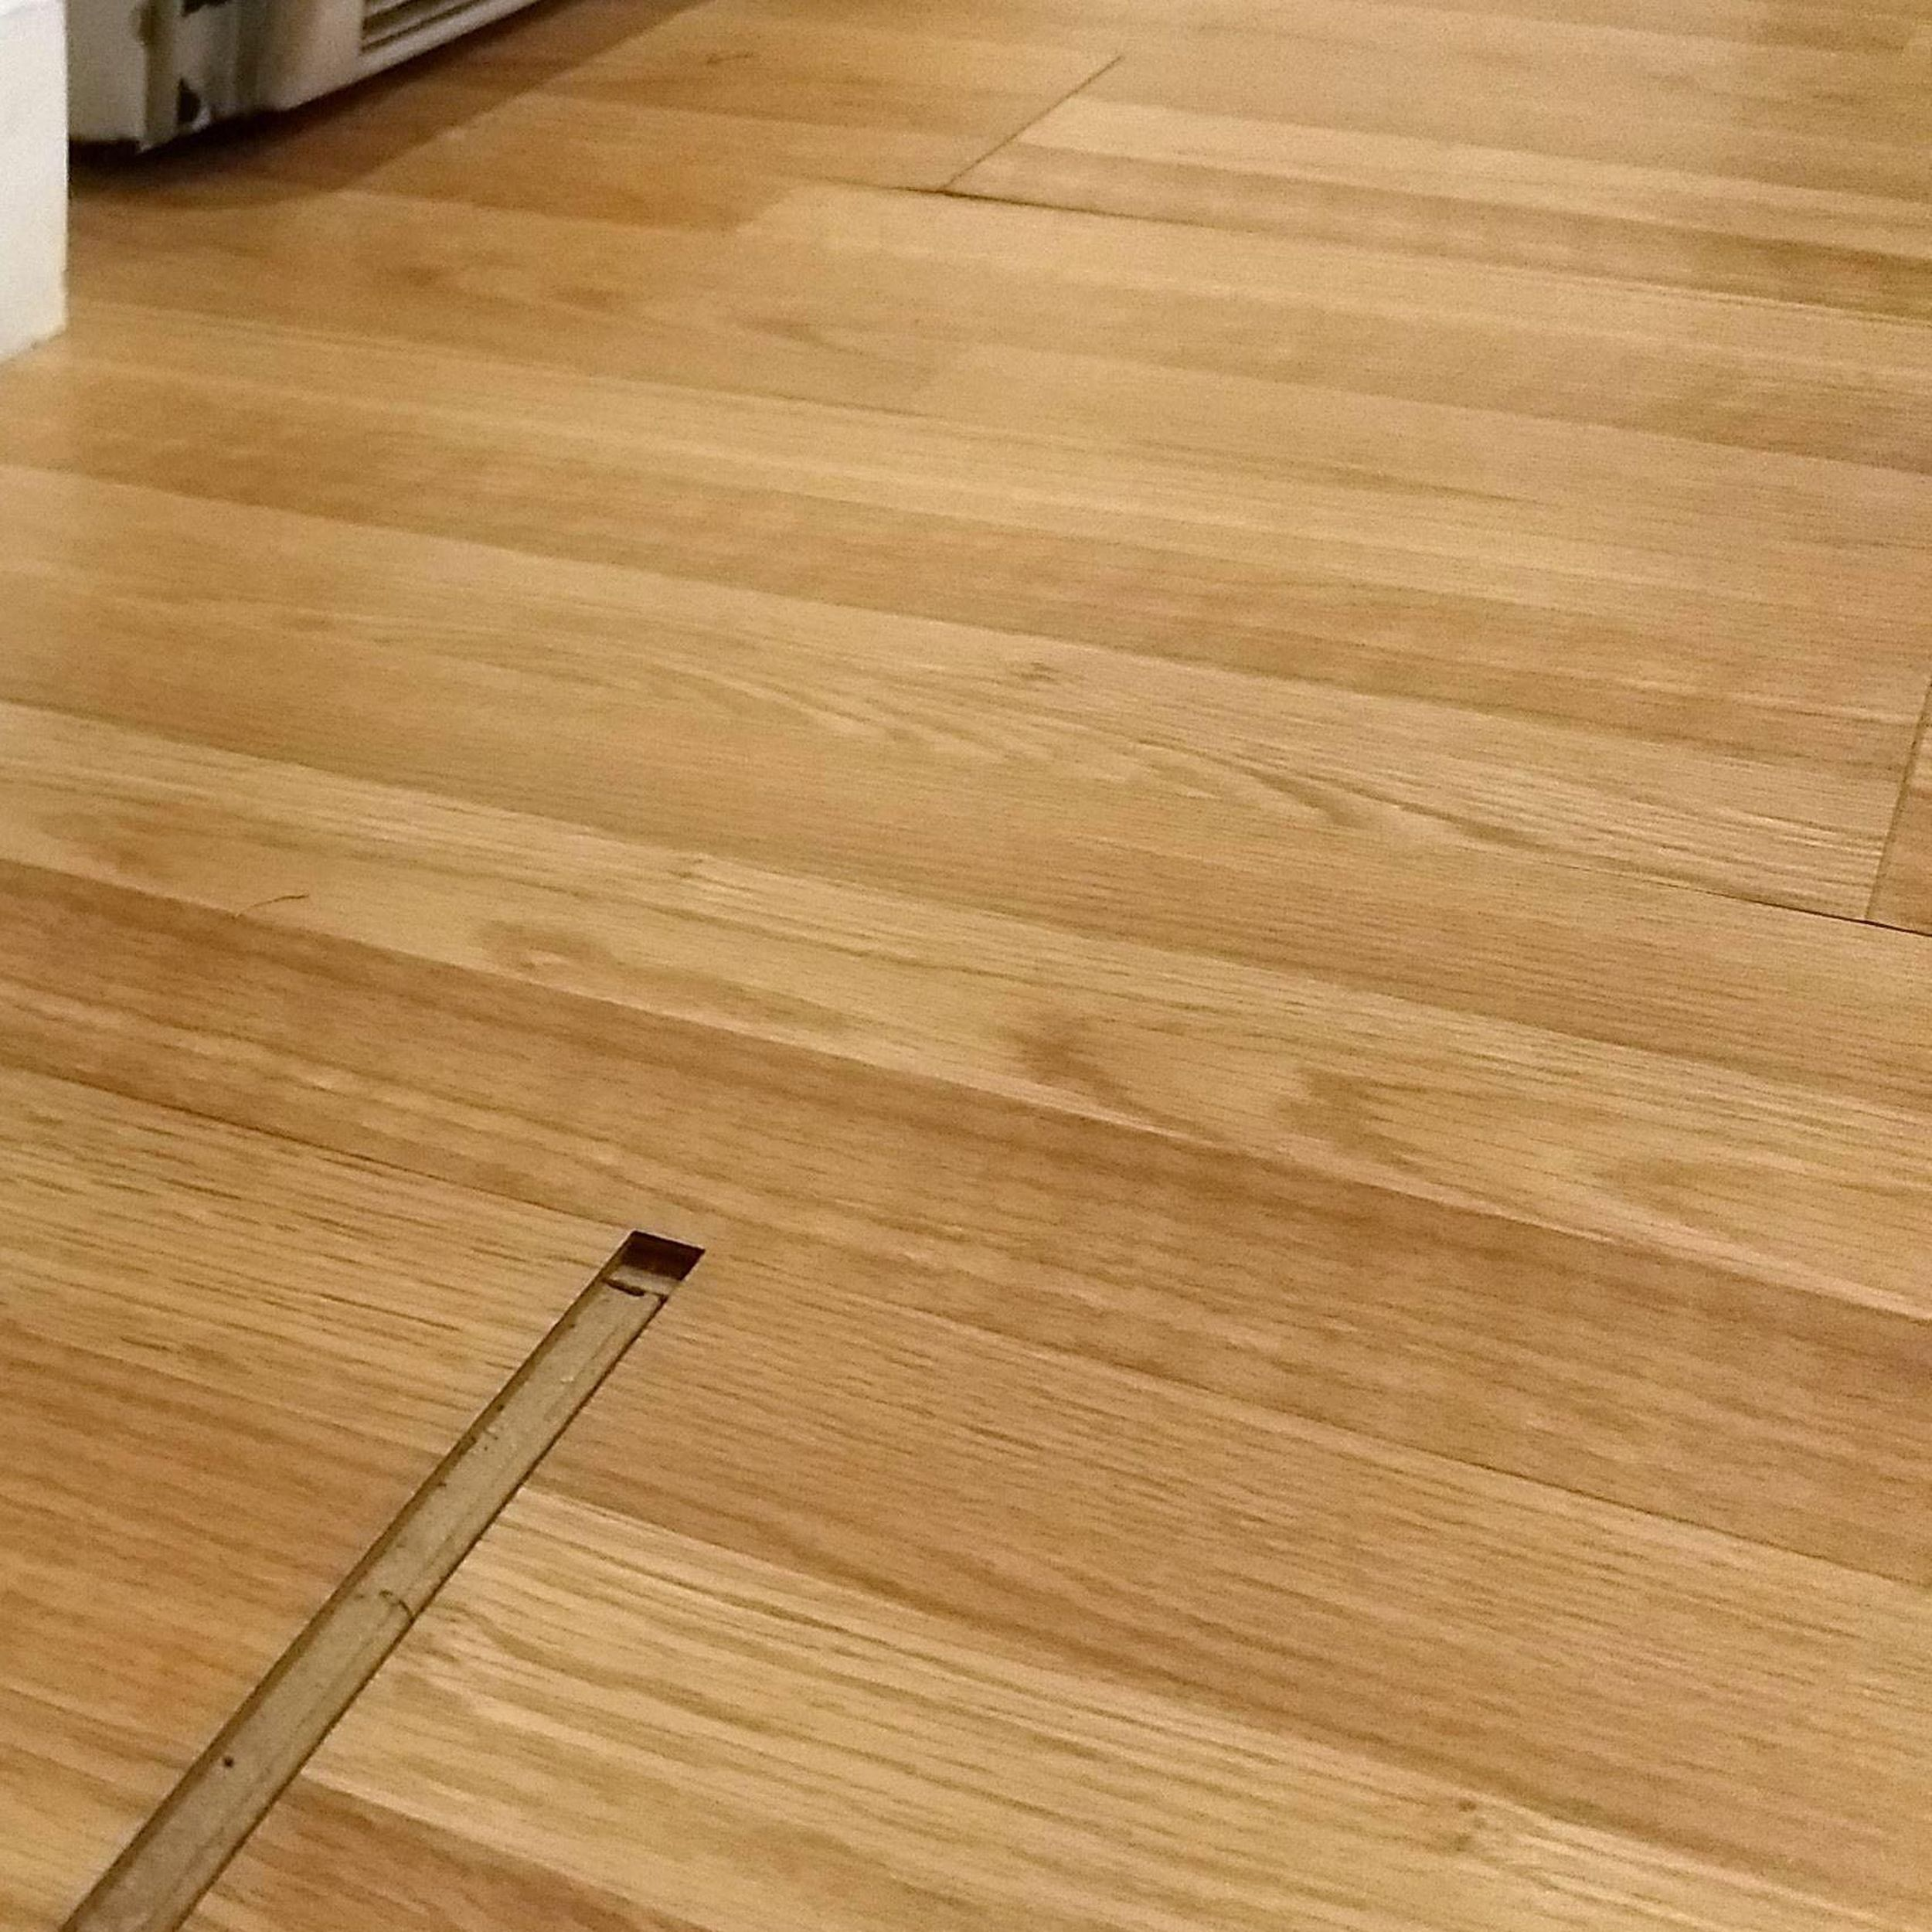 Creeping And Snapping In Laminate Floor, Does Laminate Flooring Reduce Noise